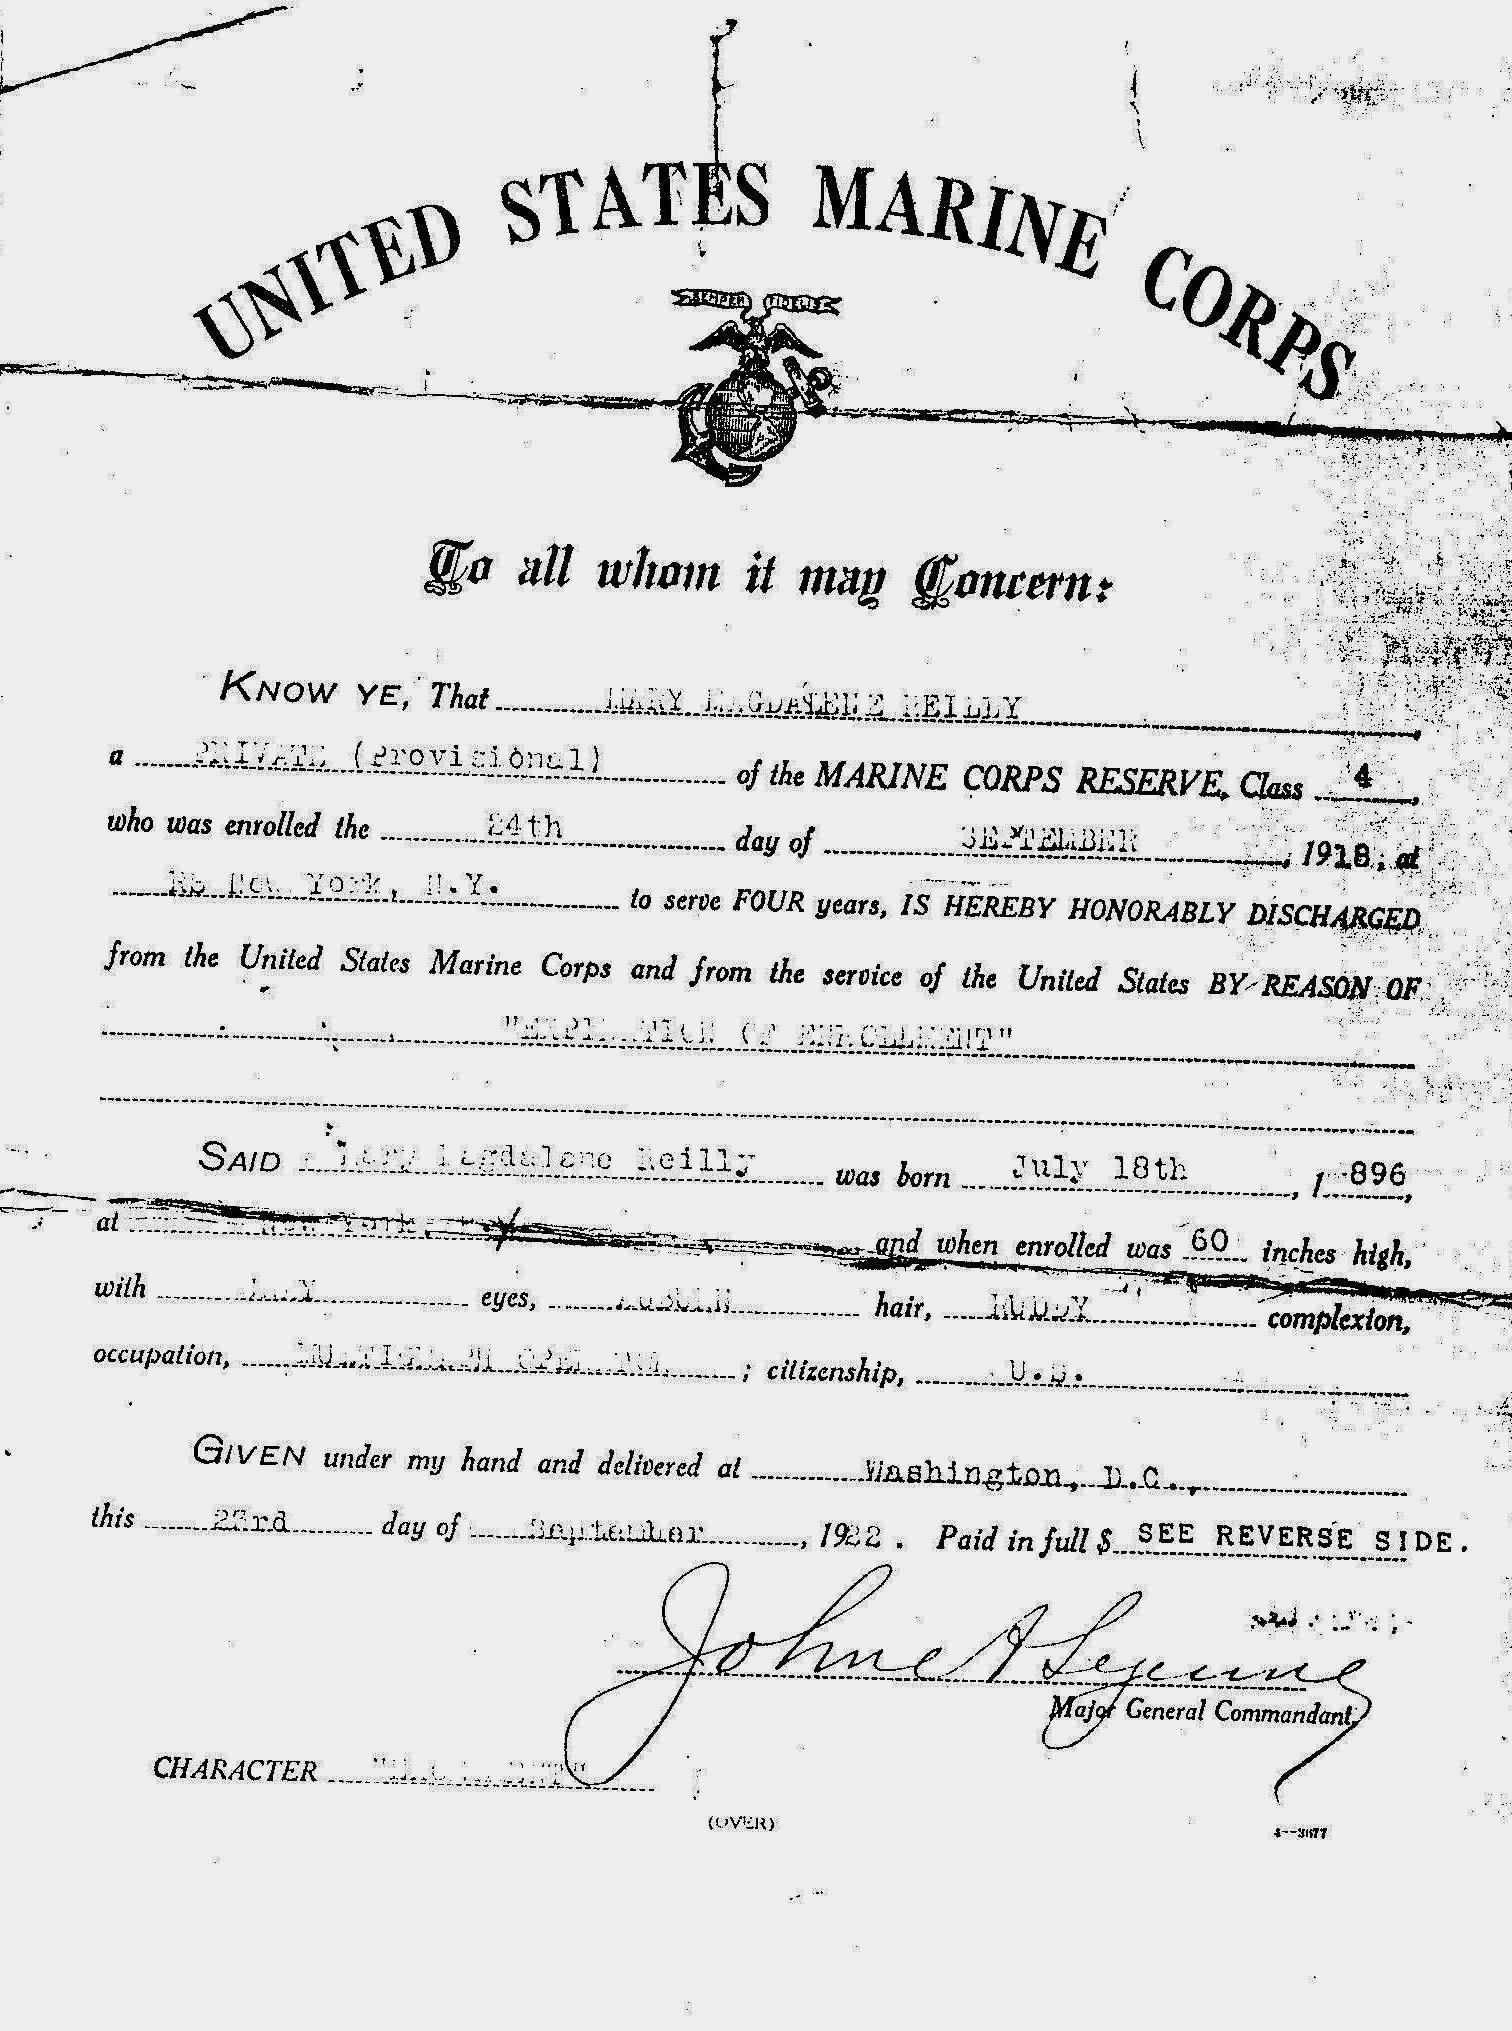 Mary Magdalene Reilly USMC Discharge papers